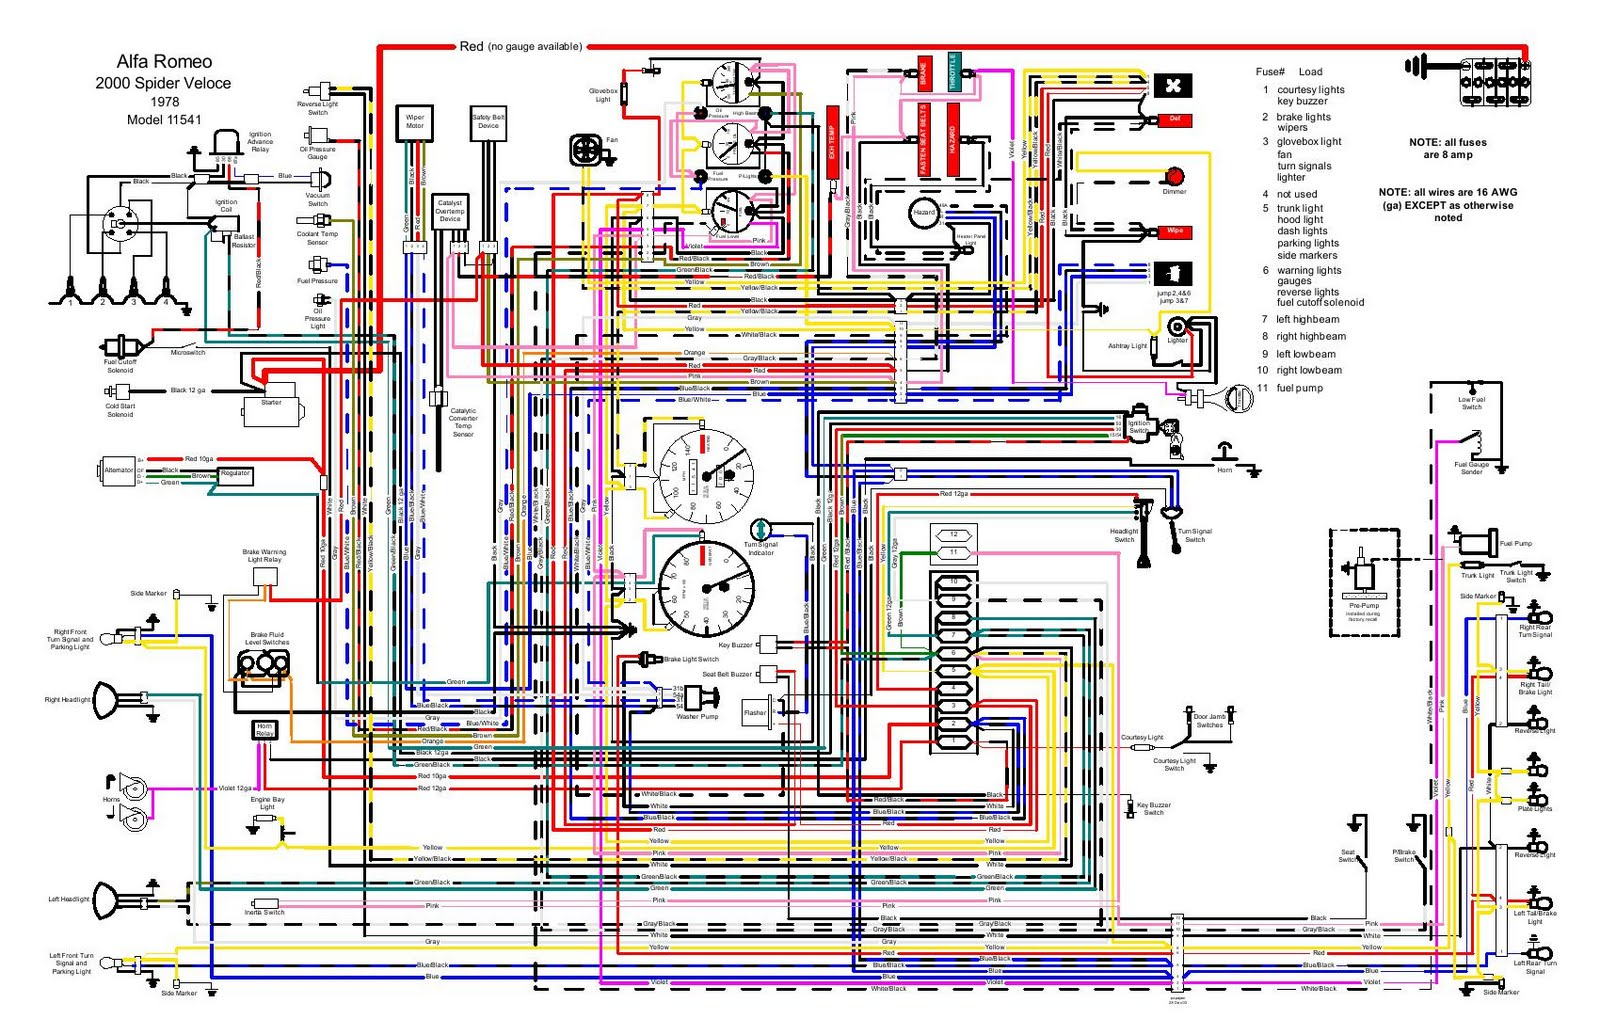 wiring diagram for 1978 alfa romeo spider CHaEWjz wiring diagrams cars readingrat net wiring schematics for cars at n-0.co